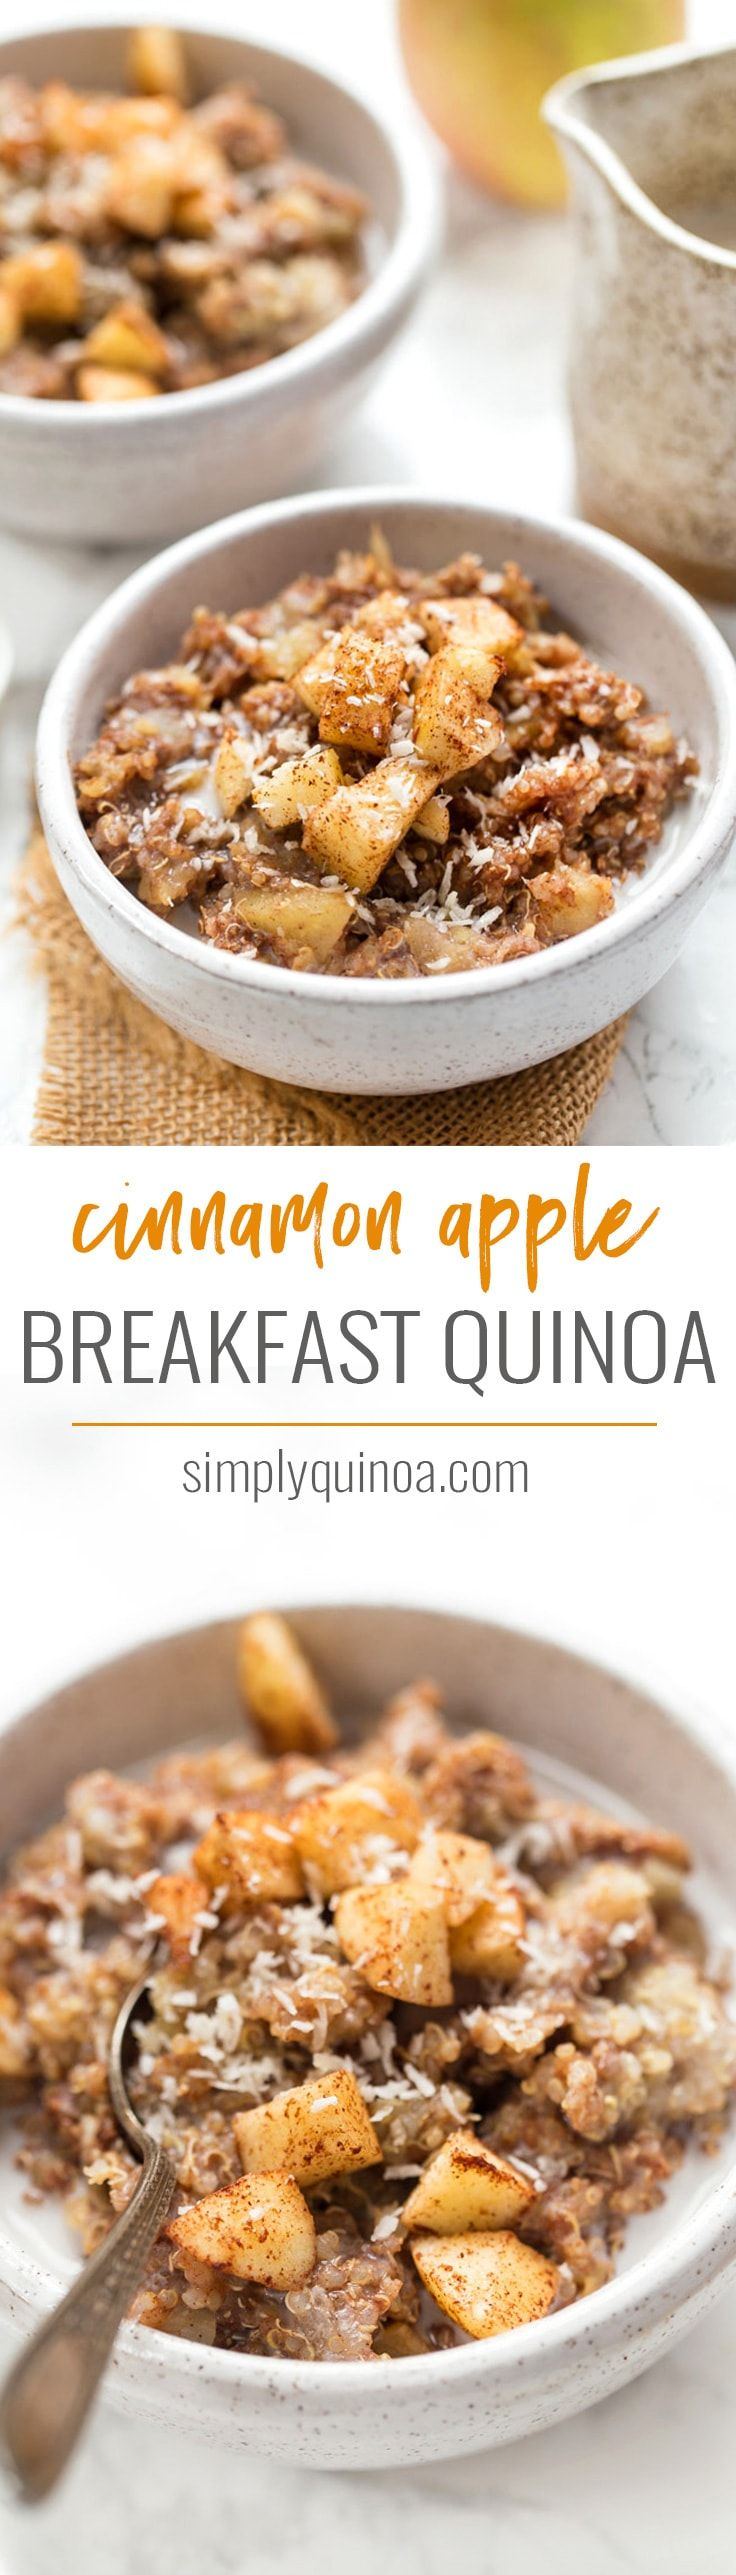 how to make cinnamon apple breakfast quinoa recipe